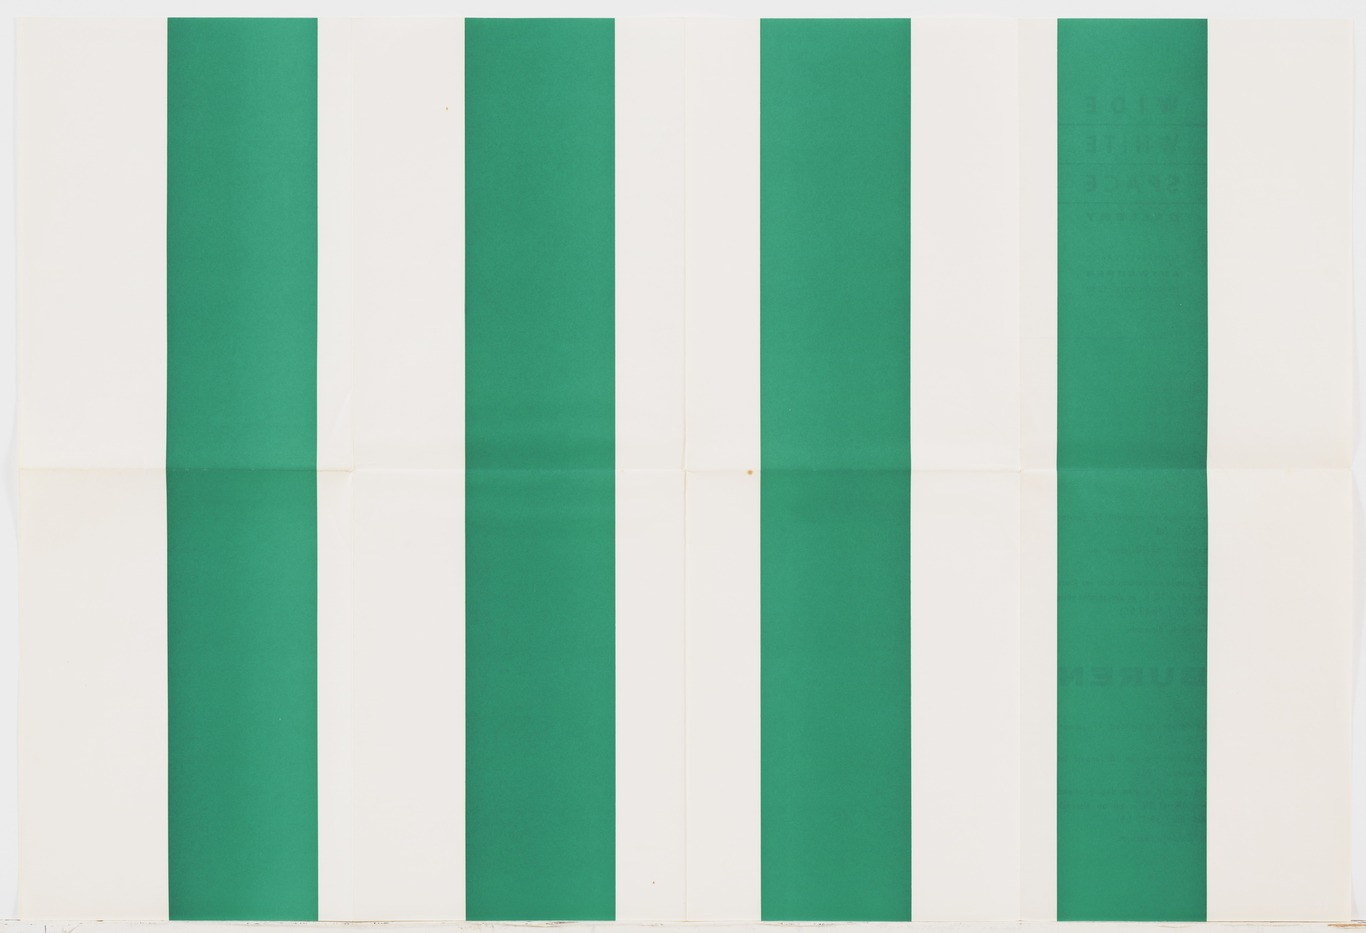 Daniel Buren: Untitled (Wide White Space Gallery Announcements), screenprint , folded double-sided lithographs, five sheets various dimensions, 1969–74; from an illustrated book of thirty mounted color photographs and thirty screenprints, D'une Impression L'Autre, page 350×520 mm, 1983; installation executed 1968–82; published by the artist and Éditions Média, Neuchâtel, Switzerland, edition of 95 (New York, Museum of Modern Art); © 2007 Daniel Buren/Artists Rights Society (ARS), New York/ADAGP, Paris, courtesy of The Museum of Modern Art, New York